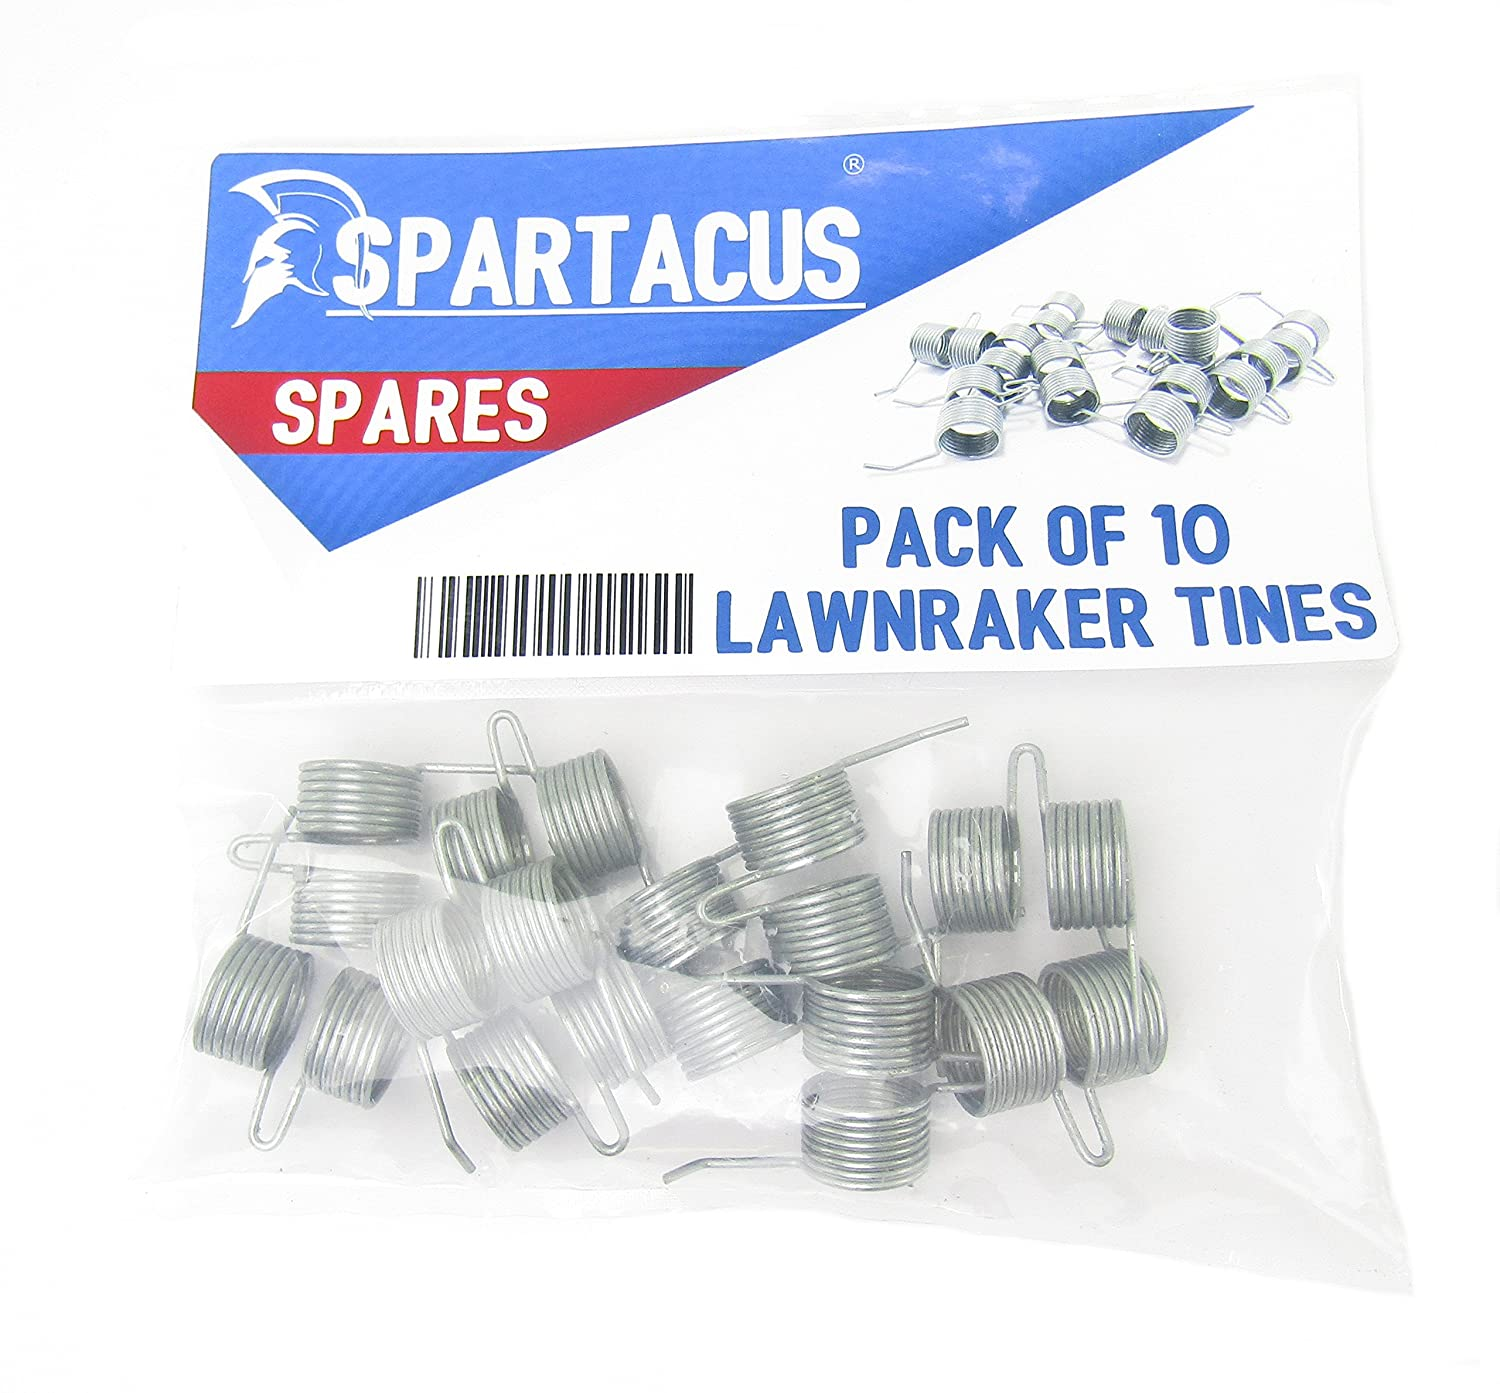 10 x Spartacus Replacement Lawn Raker Scarifier Tines Tynes For Qualcast F016T47920 Lawnraker Scarifier